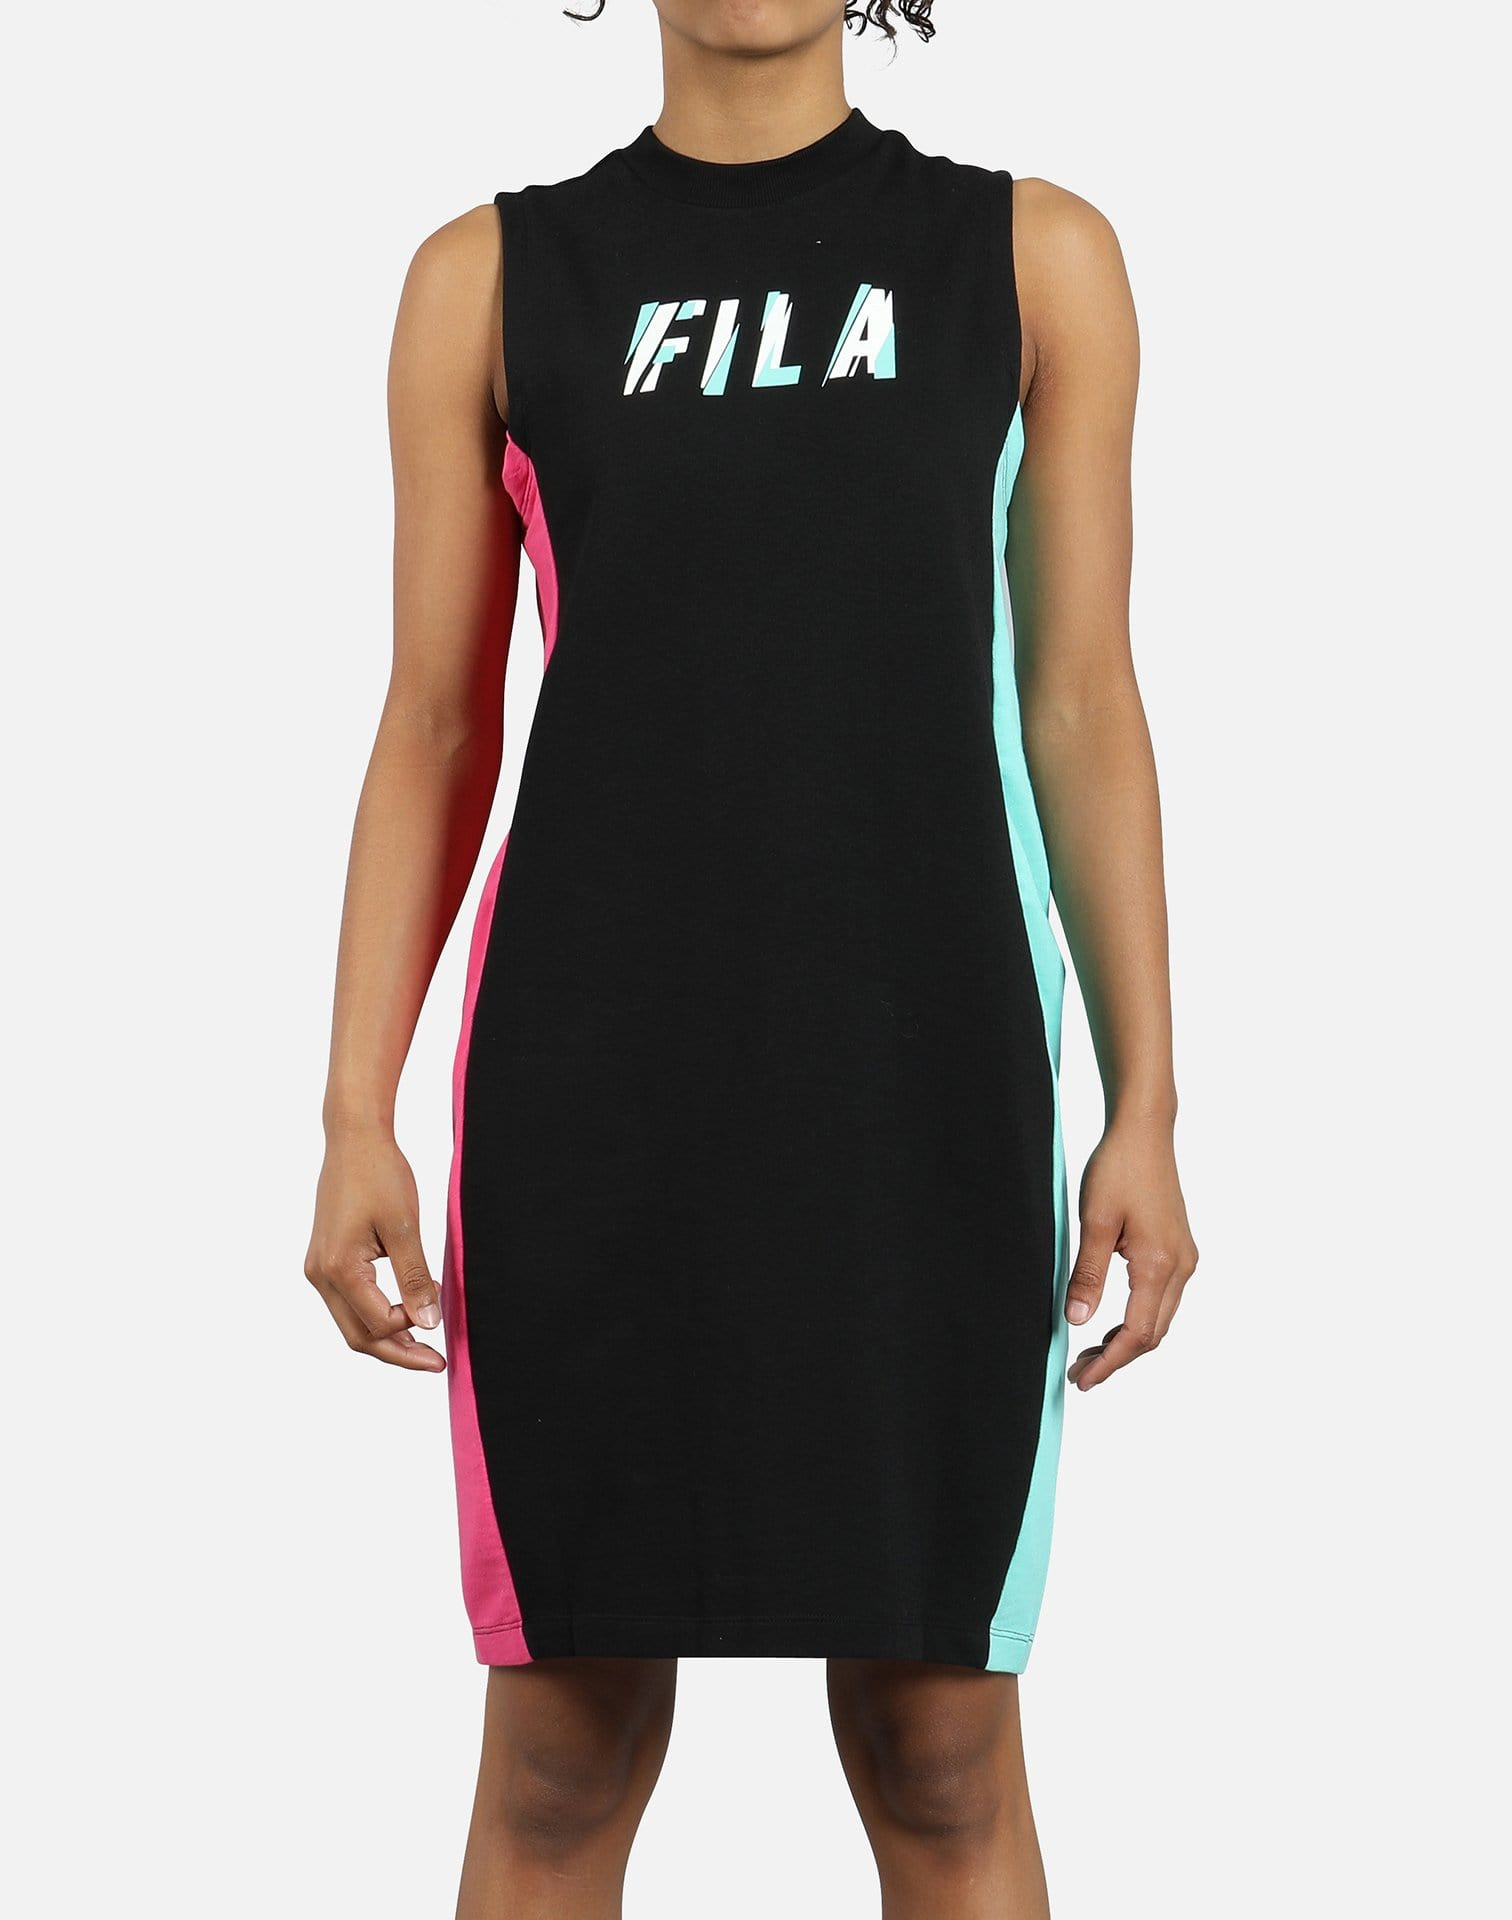 FILA Women's Wren Dress